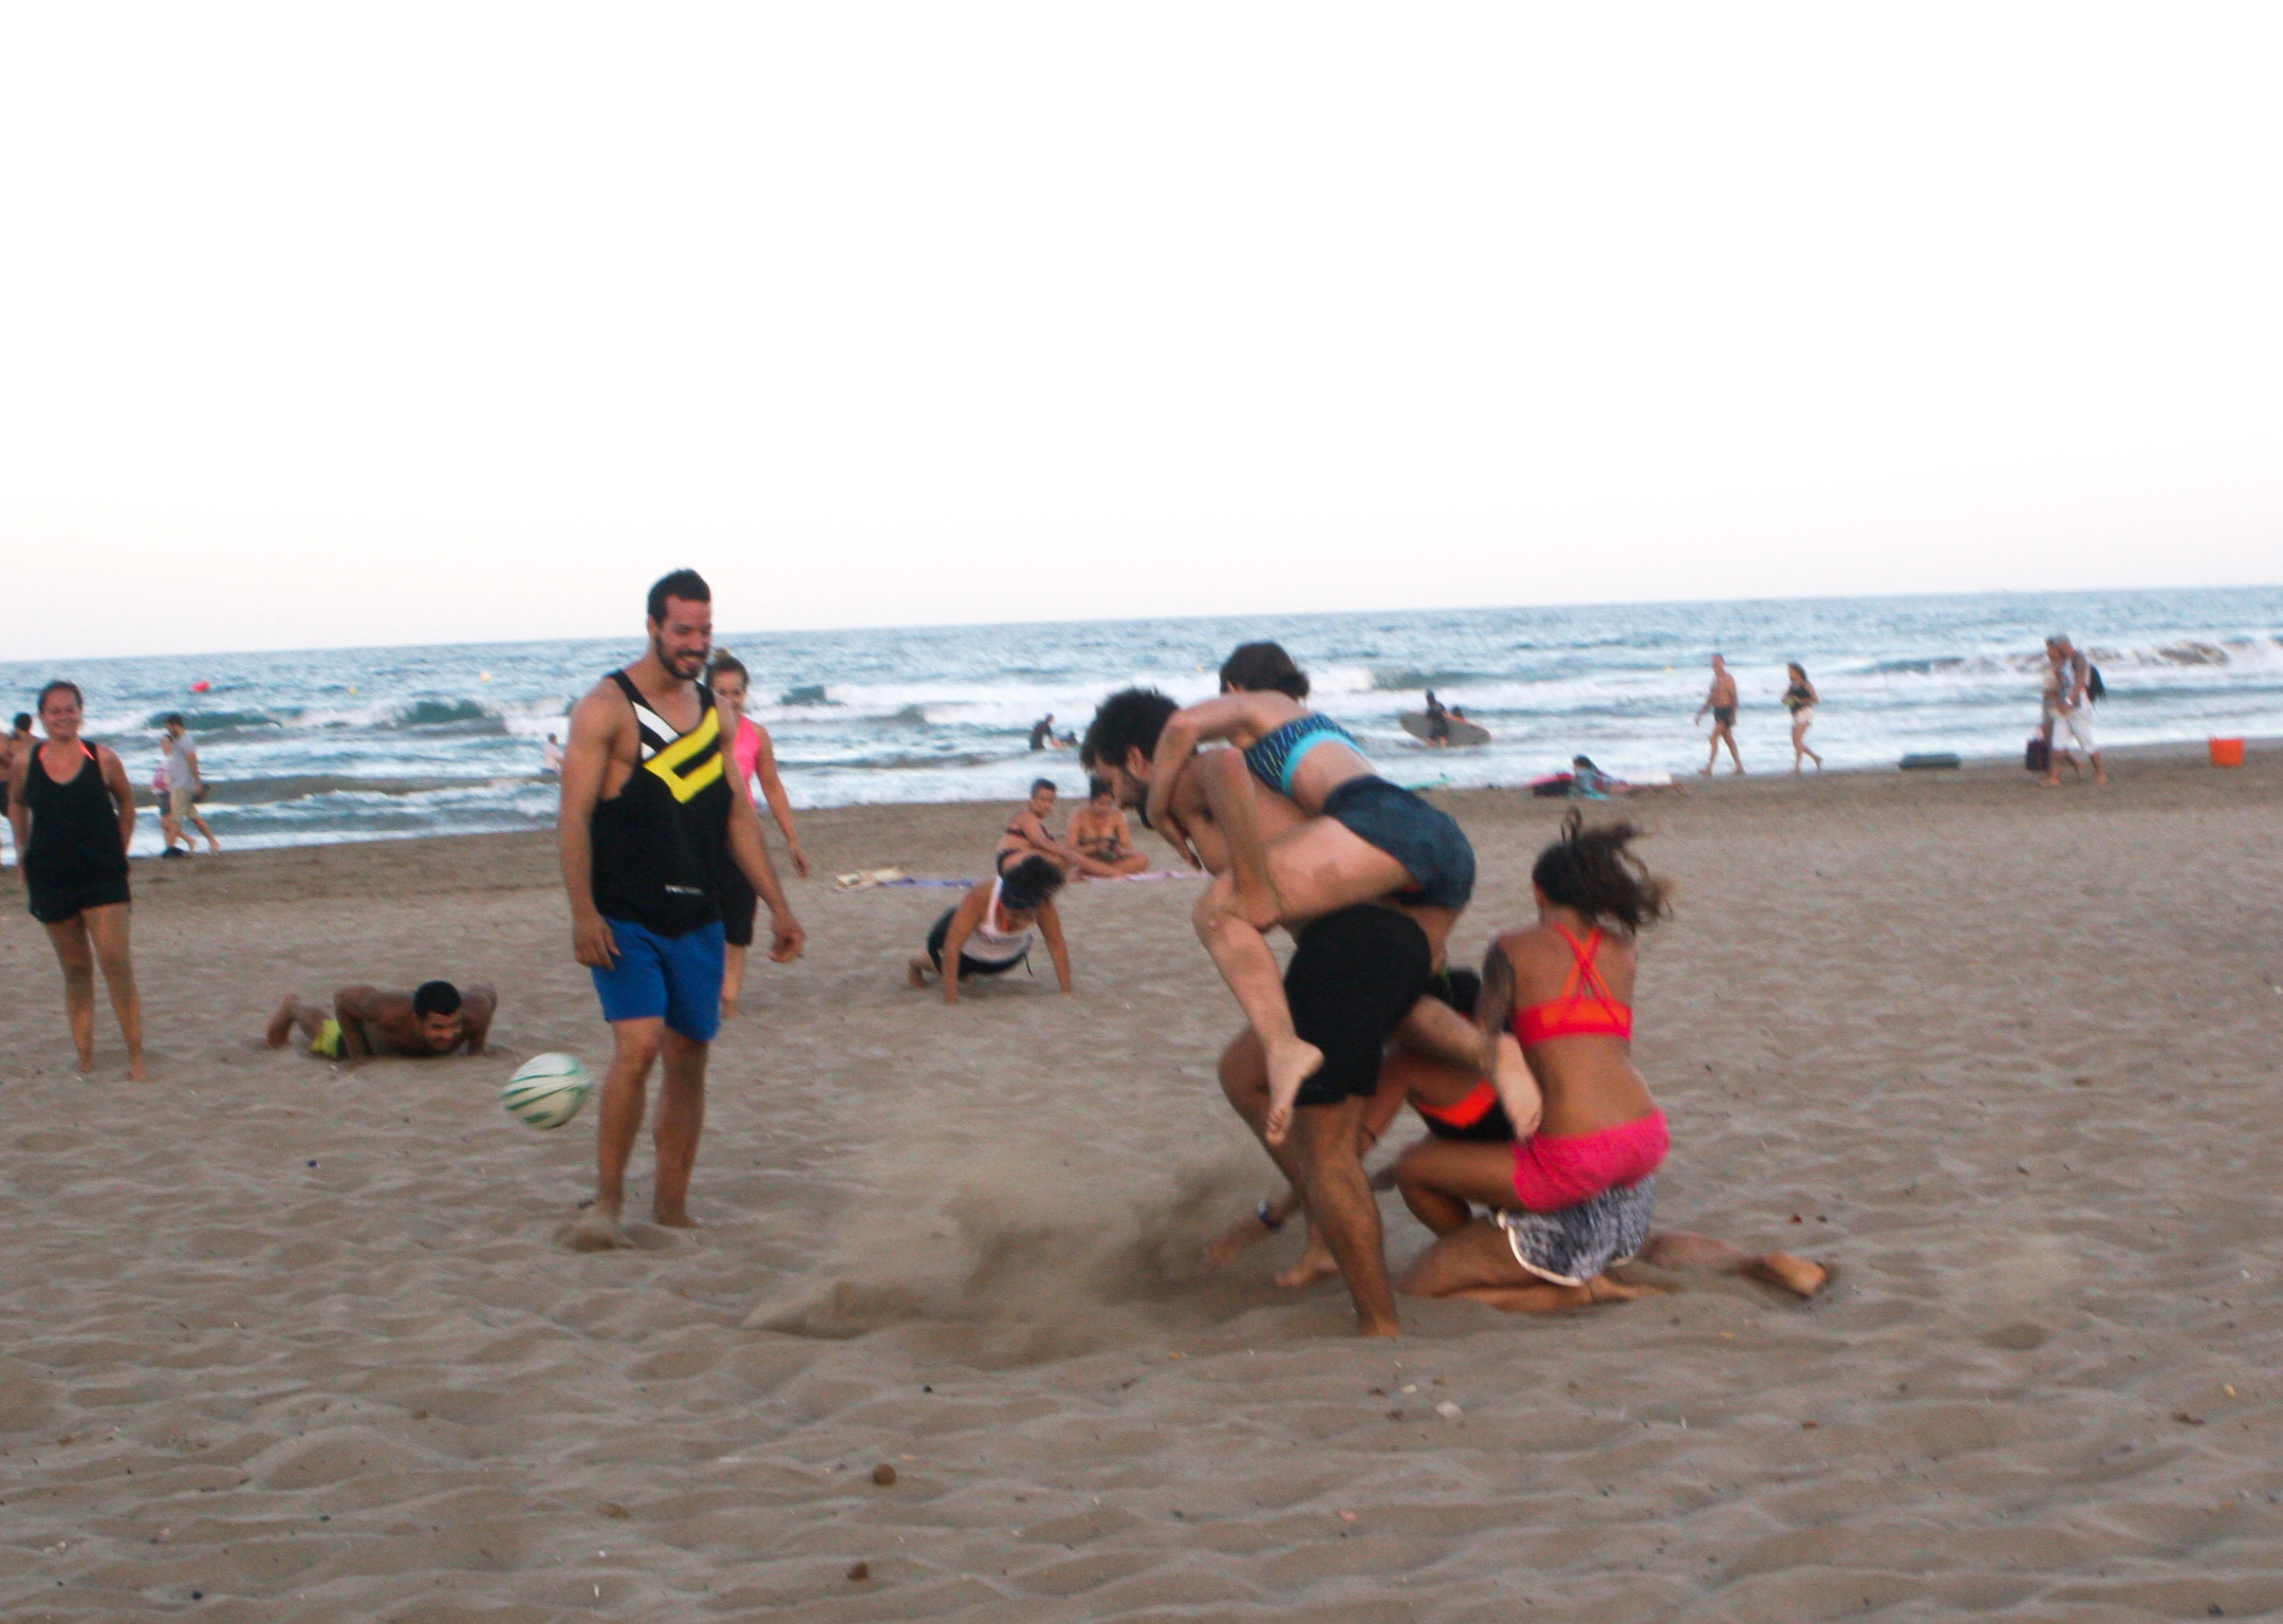 Full_CrossFit_Beach_Wod_V2_2015-18.jpg